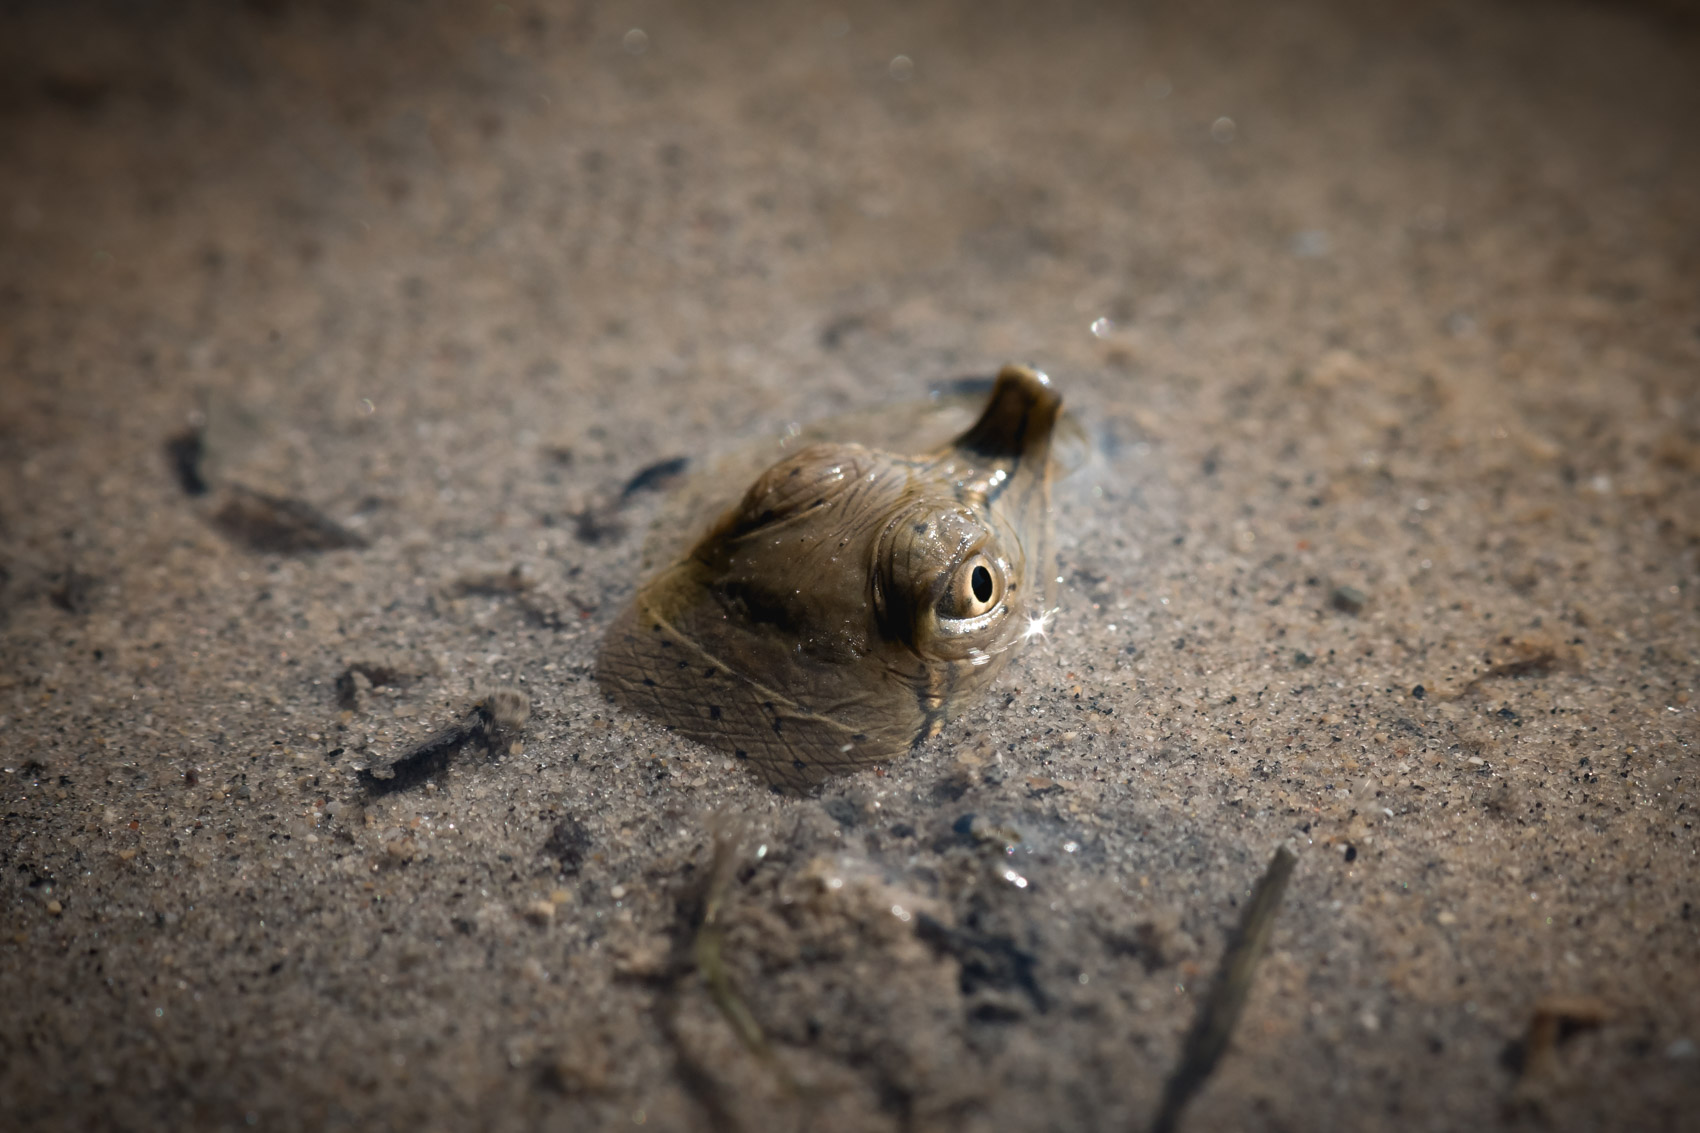 A spiny softshell turtle head poking up from the sand in the Upper Thames River © David Coulson conservation photojournalist